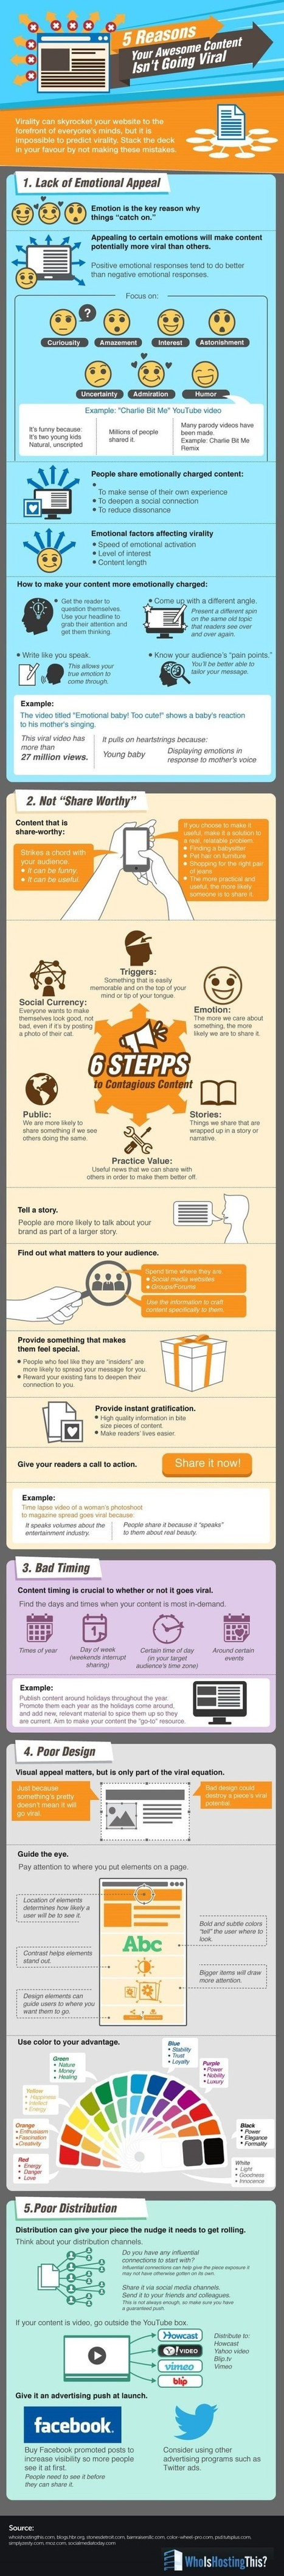 Check These 5 Tactics to Make Your Content Go Viral #infographic | Social Media Tips & News | Scoop.it